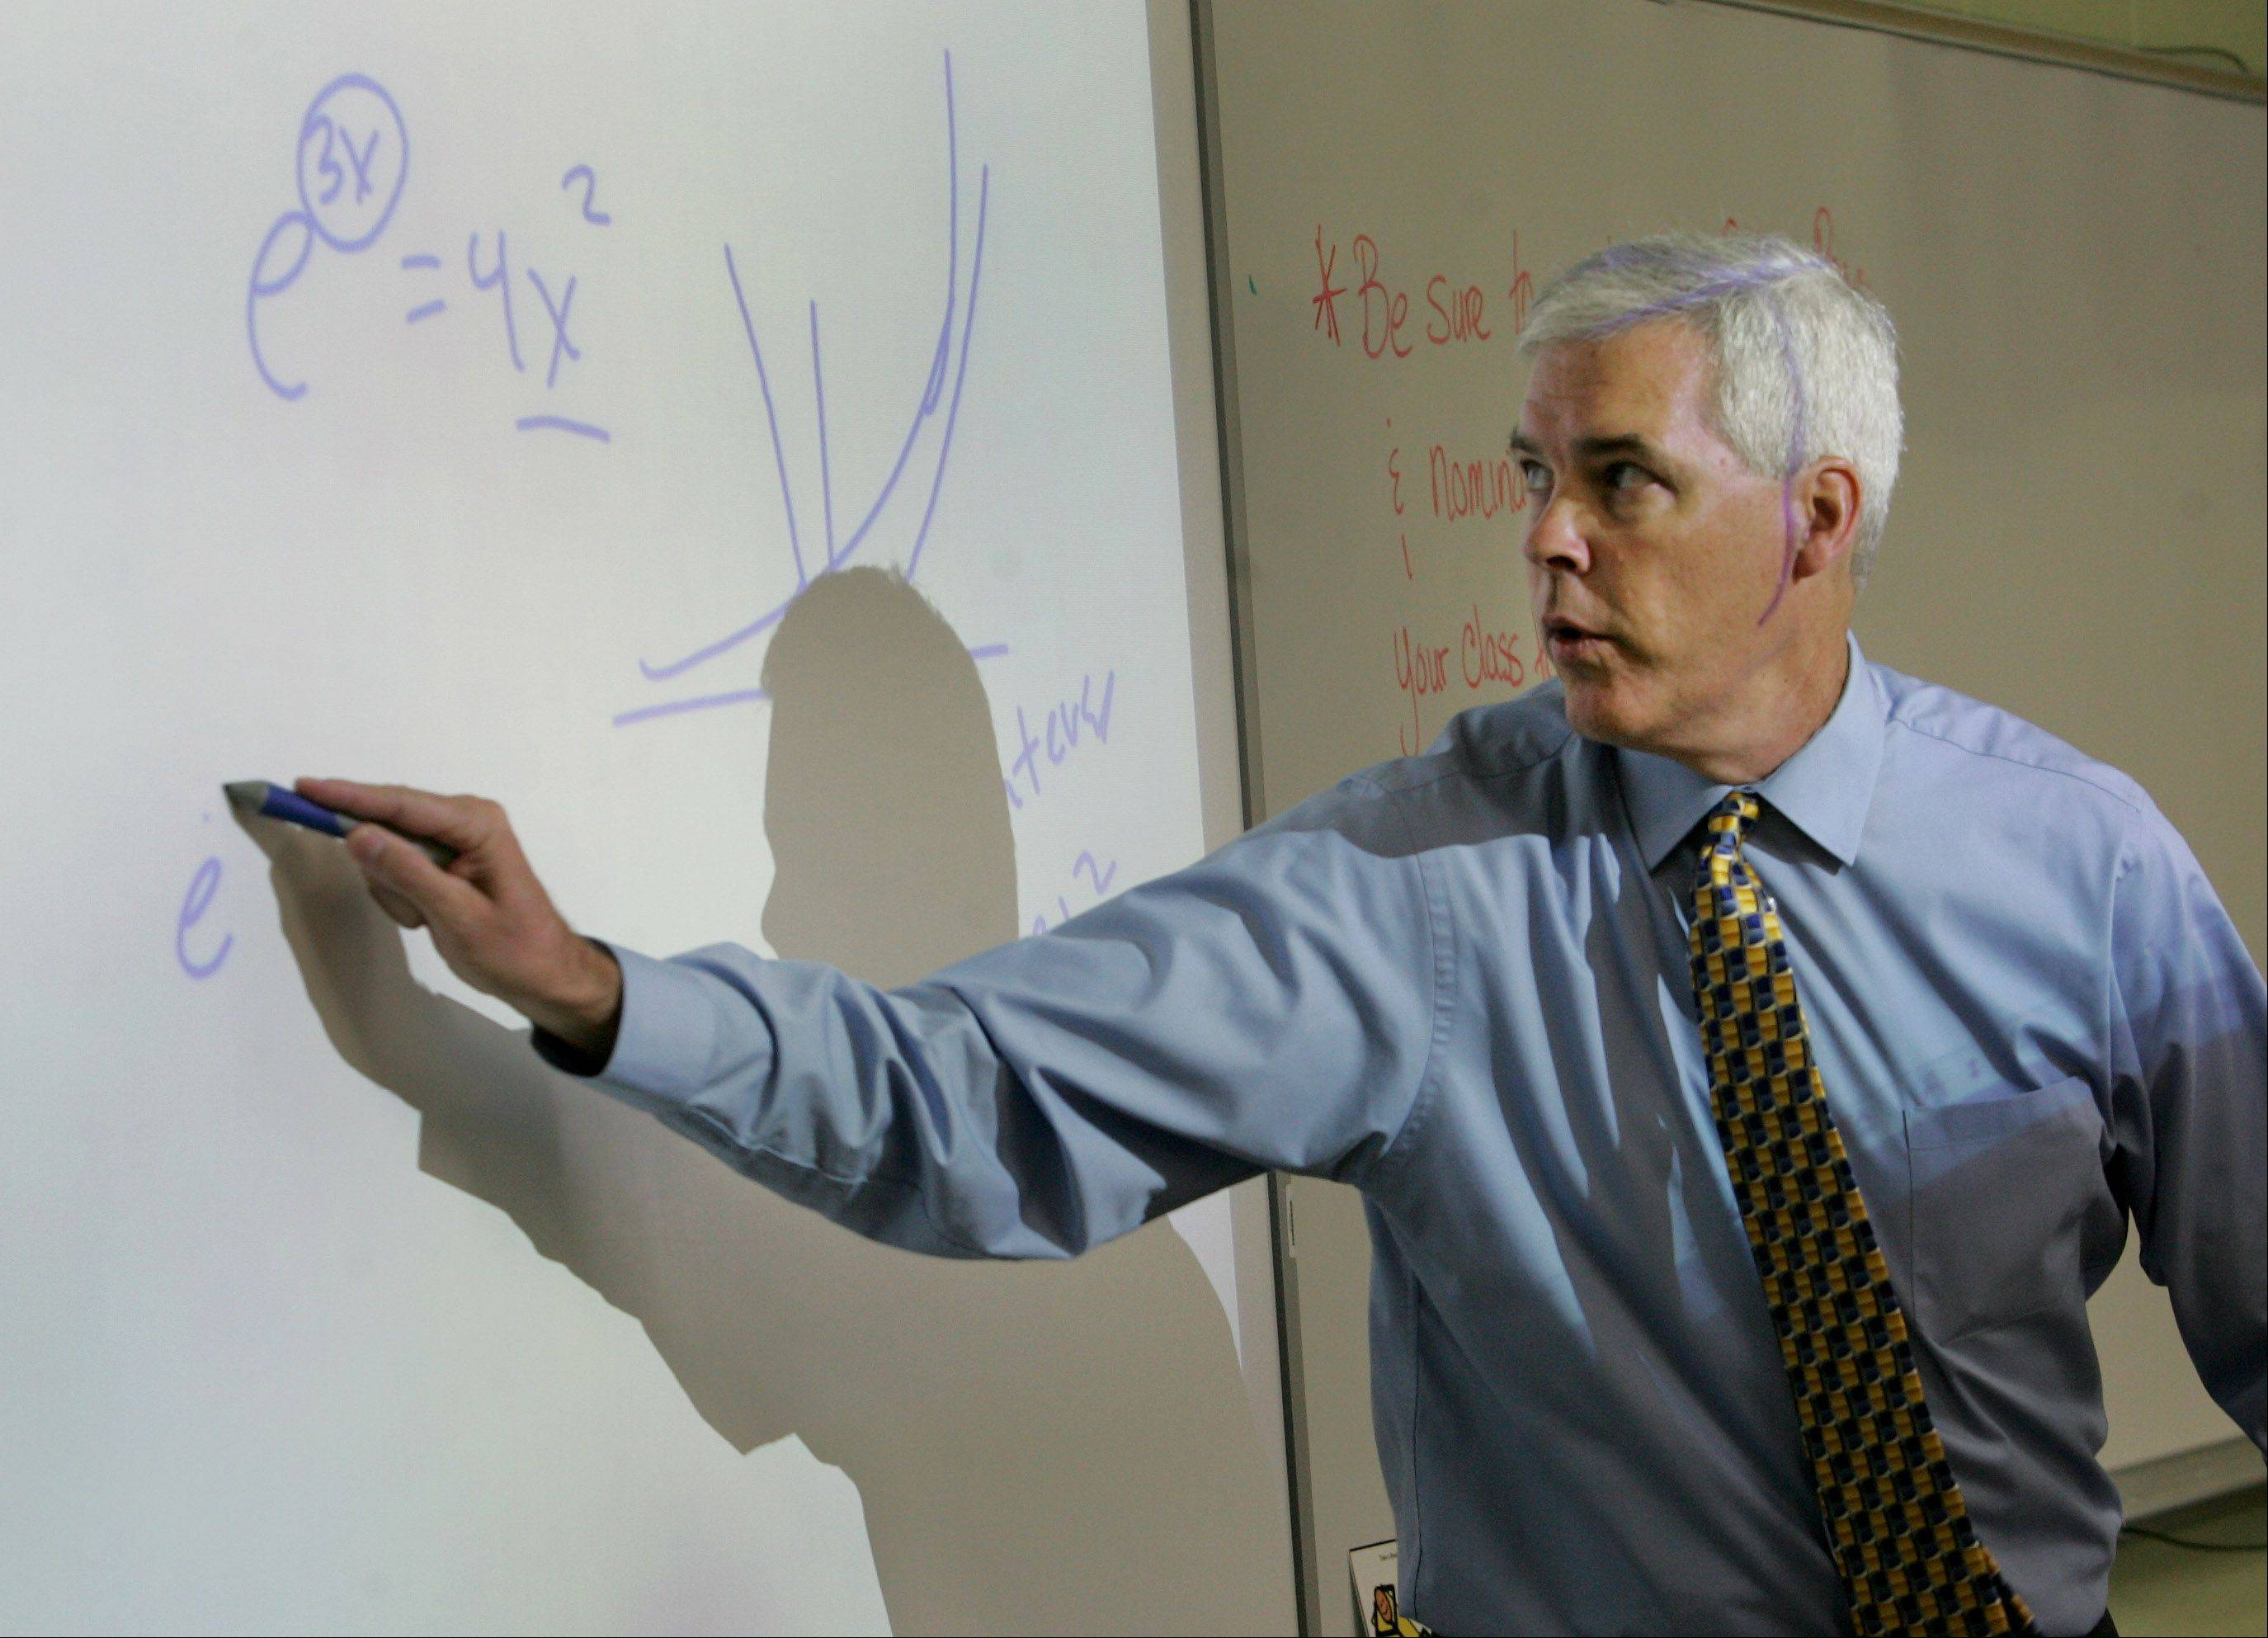 Bill Yanisch teaches 27 students in an Advanced Placement calculus class at Neuqua Valley High School in Naperville.